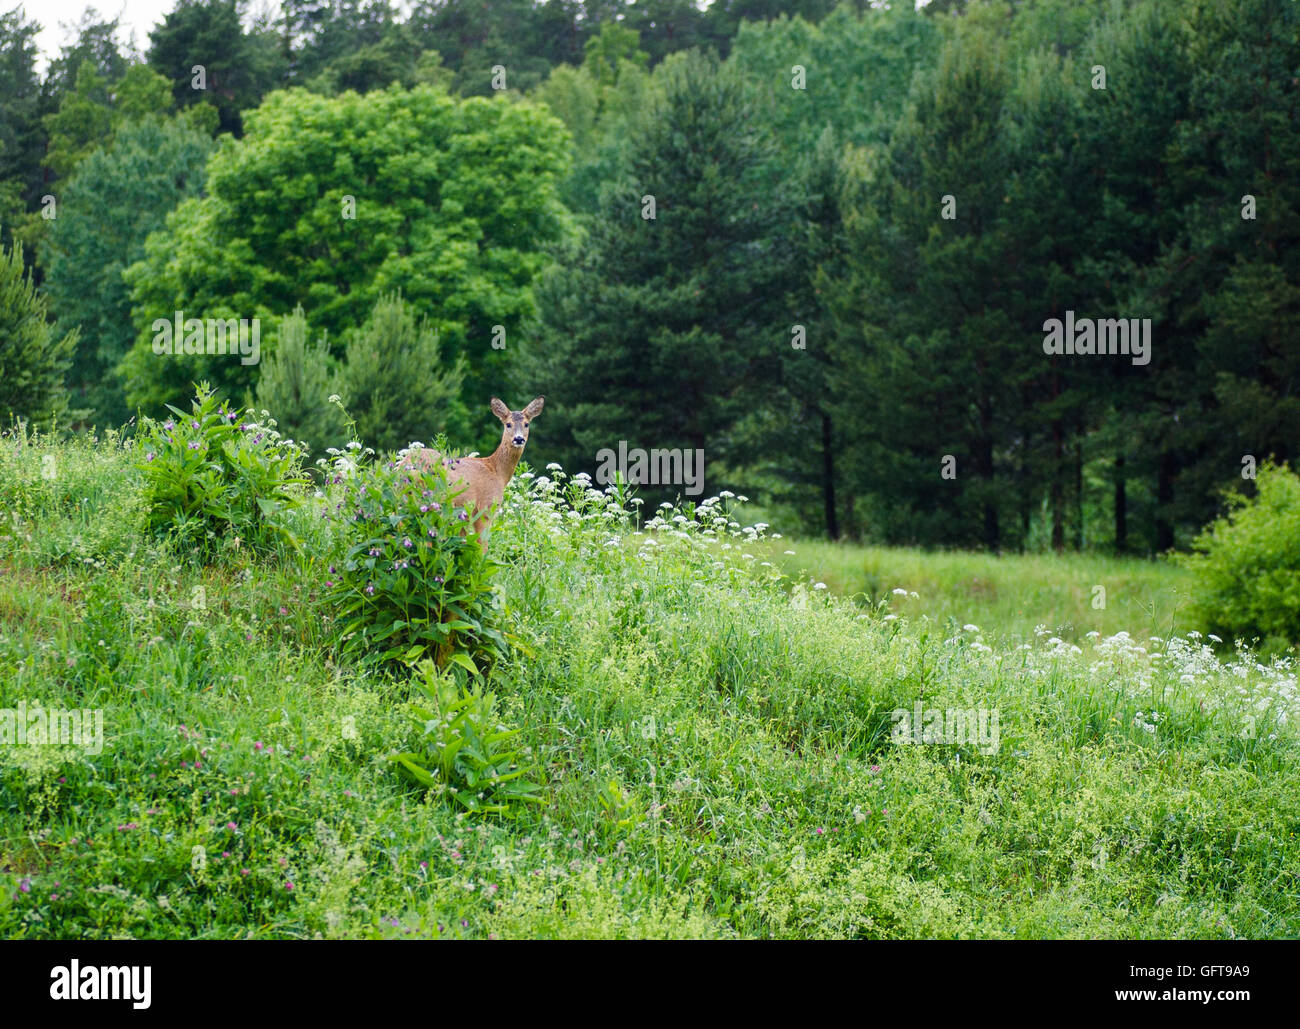 A roe deer in the Swedish forest. - Stock Image